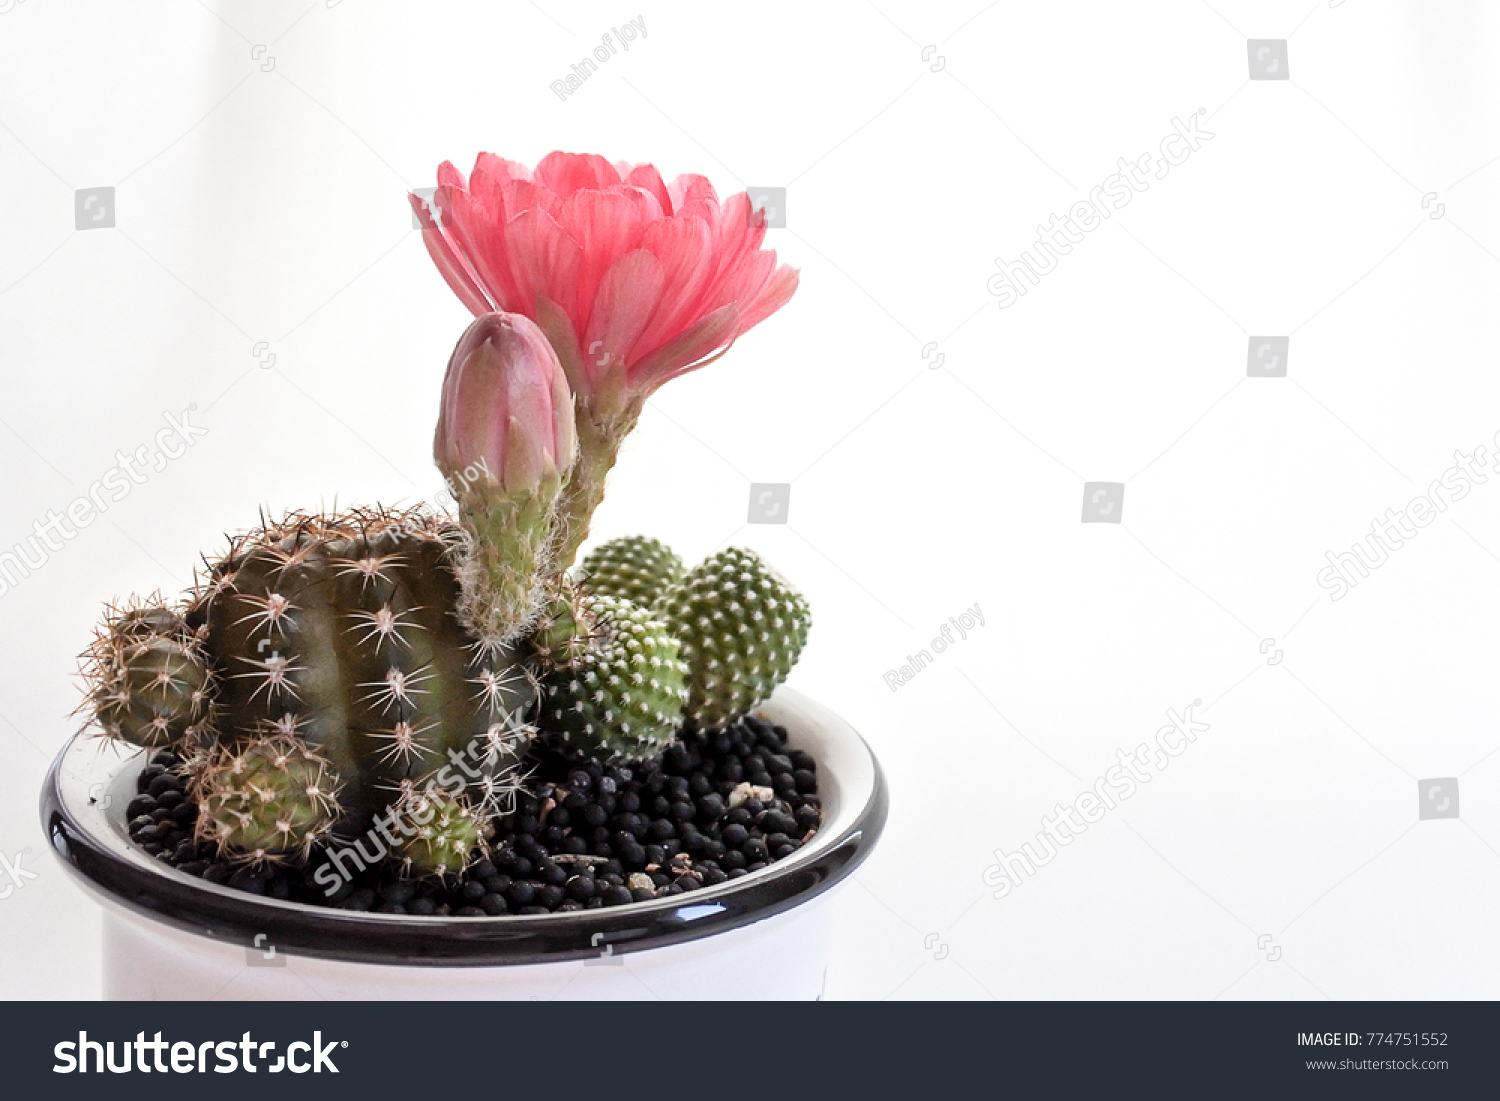 Cactus Echinopsis Hybrid Pink Flowers Like Stock Photo Edit Now